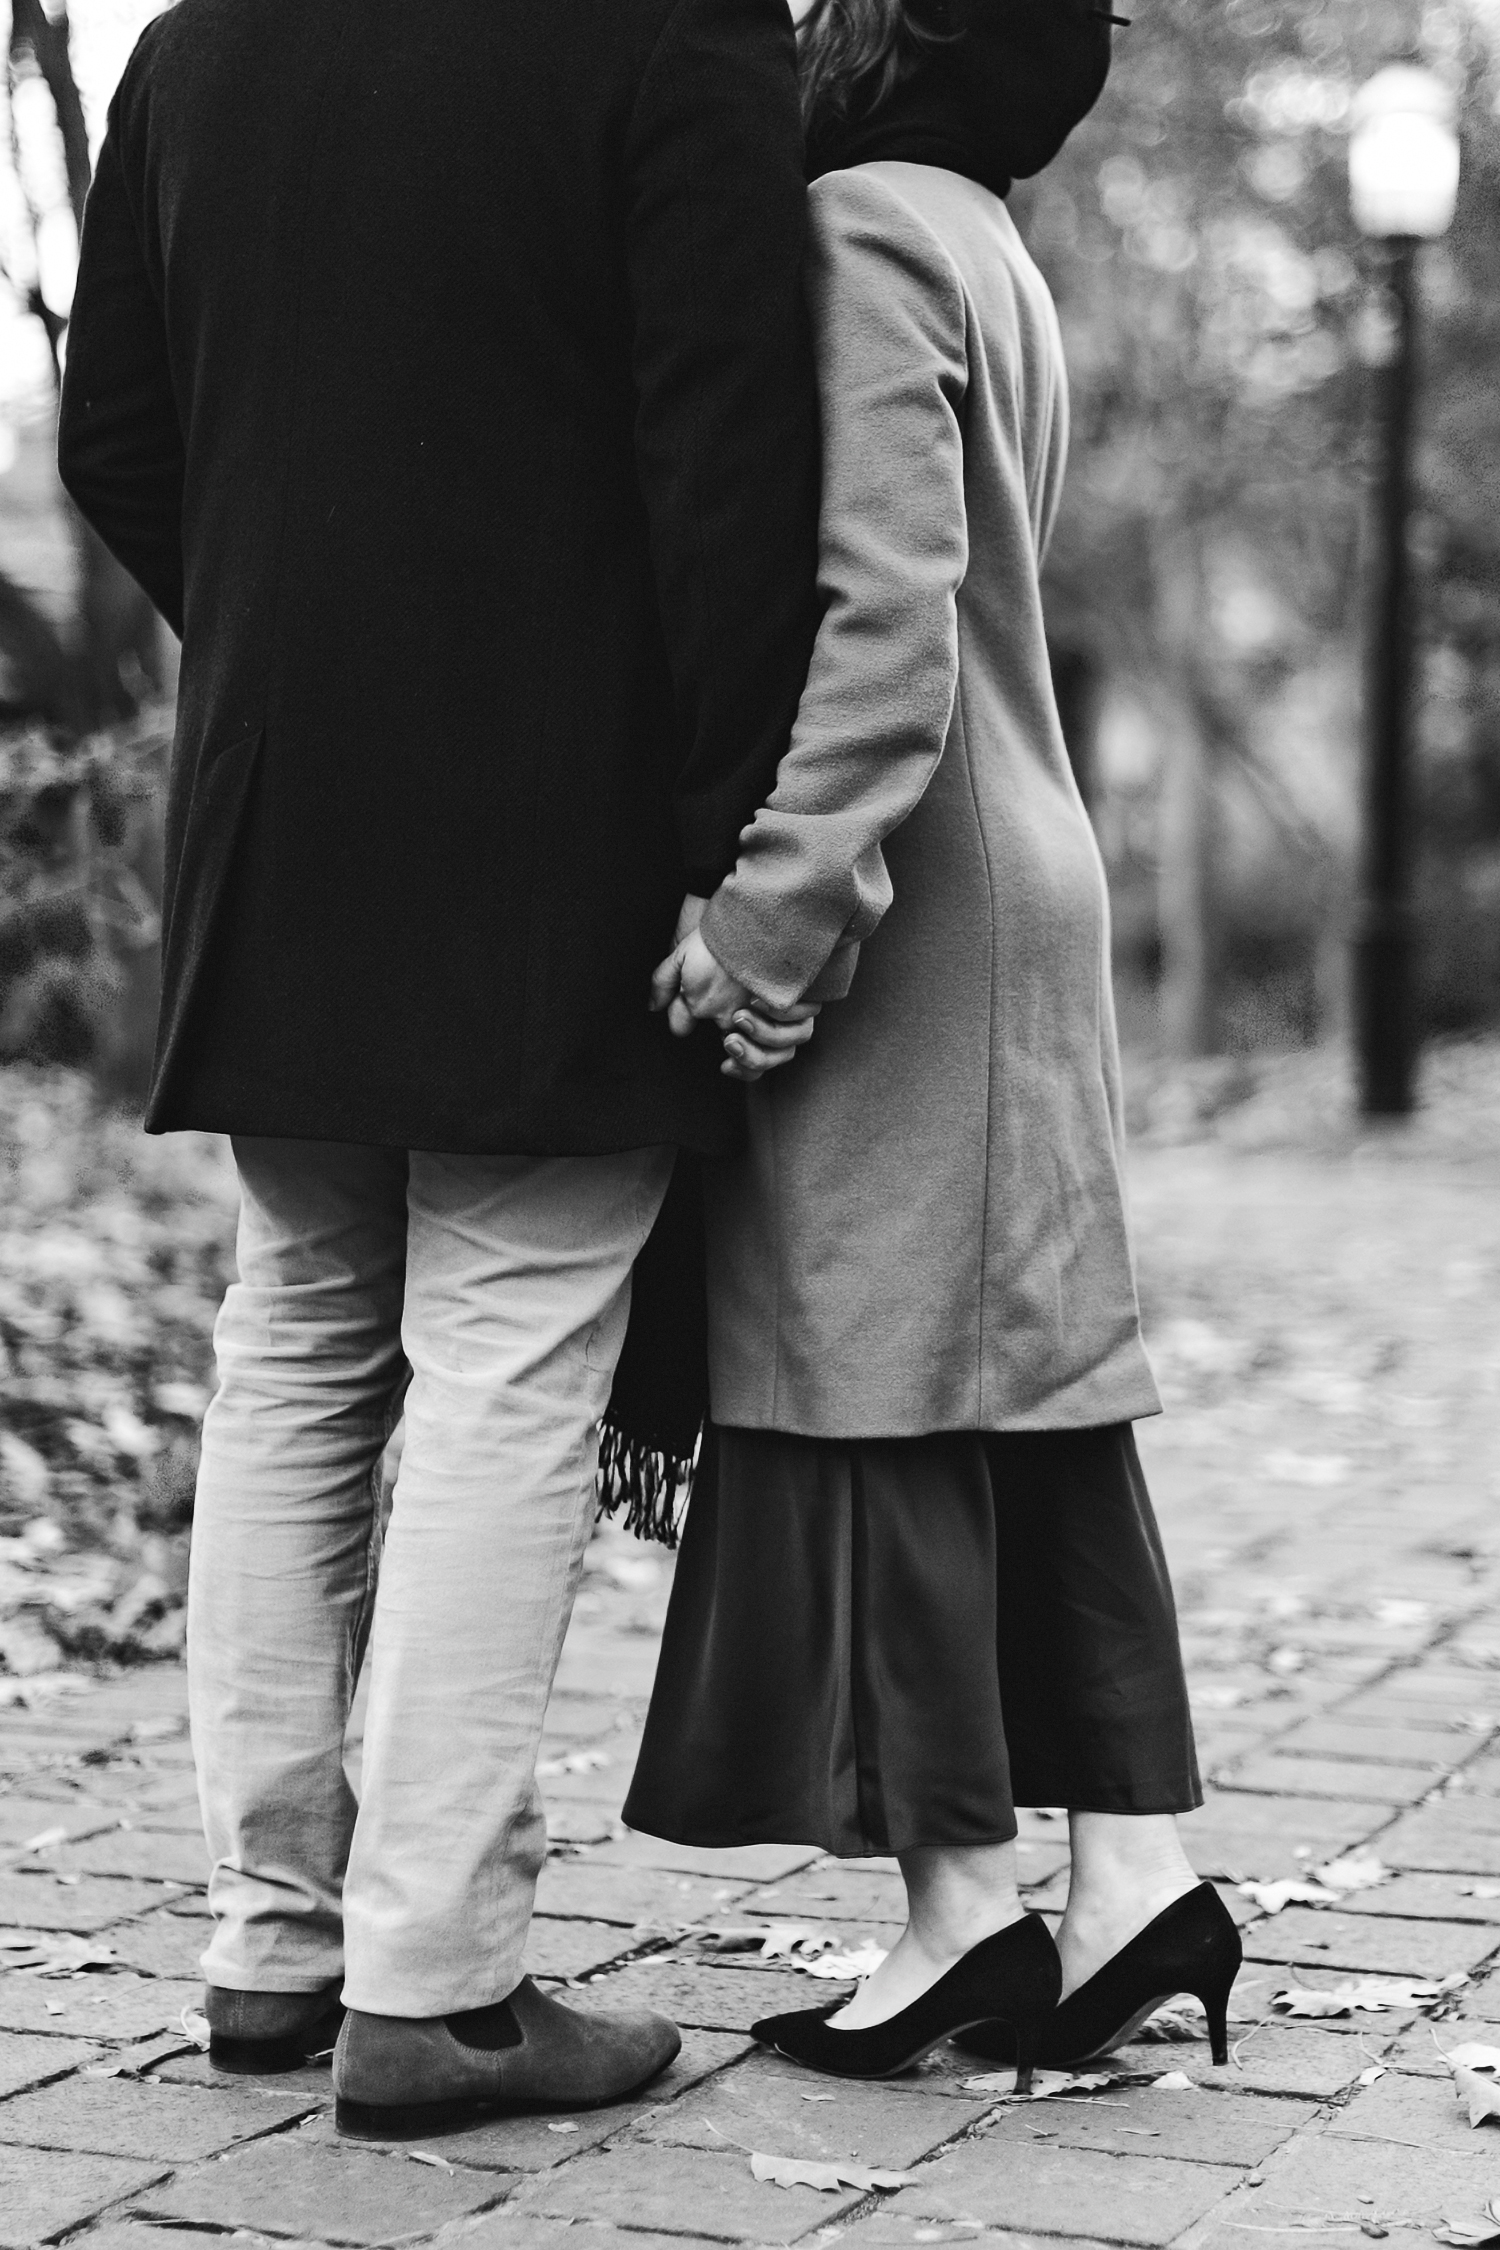 alternative-engagement-photographer-lifestyle-session-ryanne-hollies-photography-toronto-st-james-park-editorial-city-urban-mens-womens-fashion-magazine-cover-intimate-streetstyle-alternative-park-holding-hands.jpg